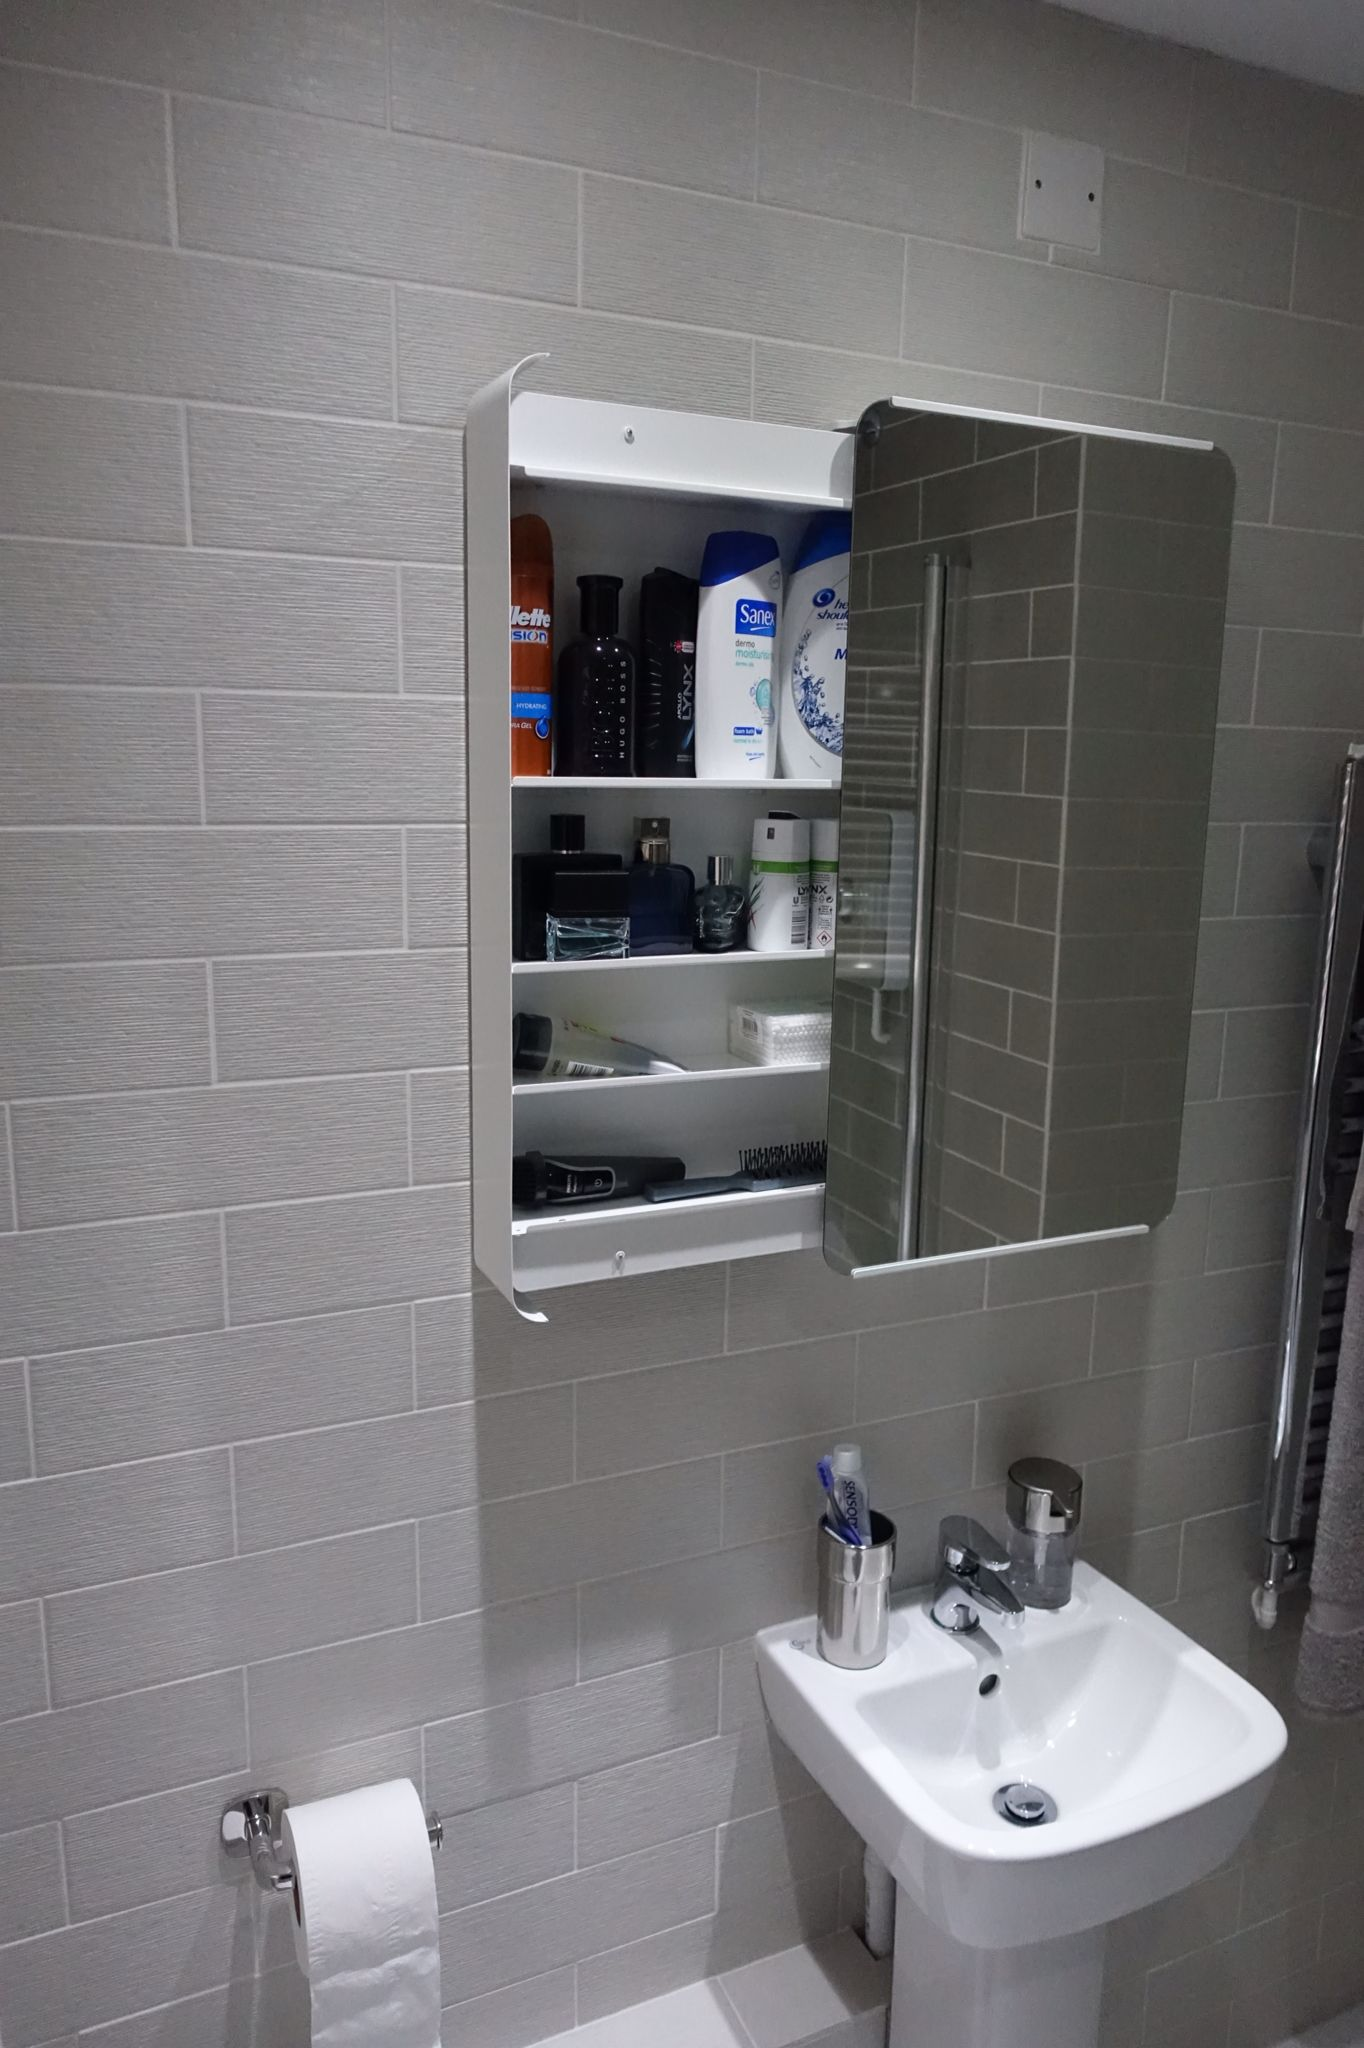 The bathroom was purchased from ikea (Brickan